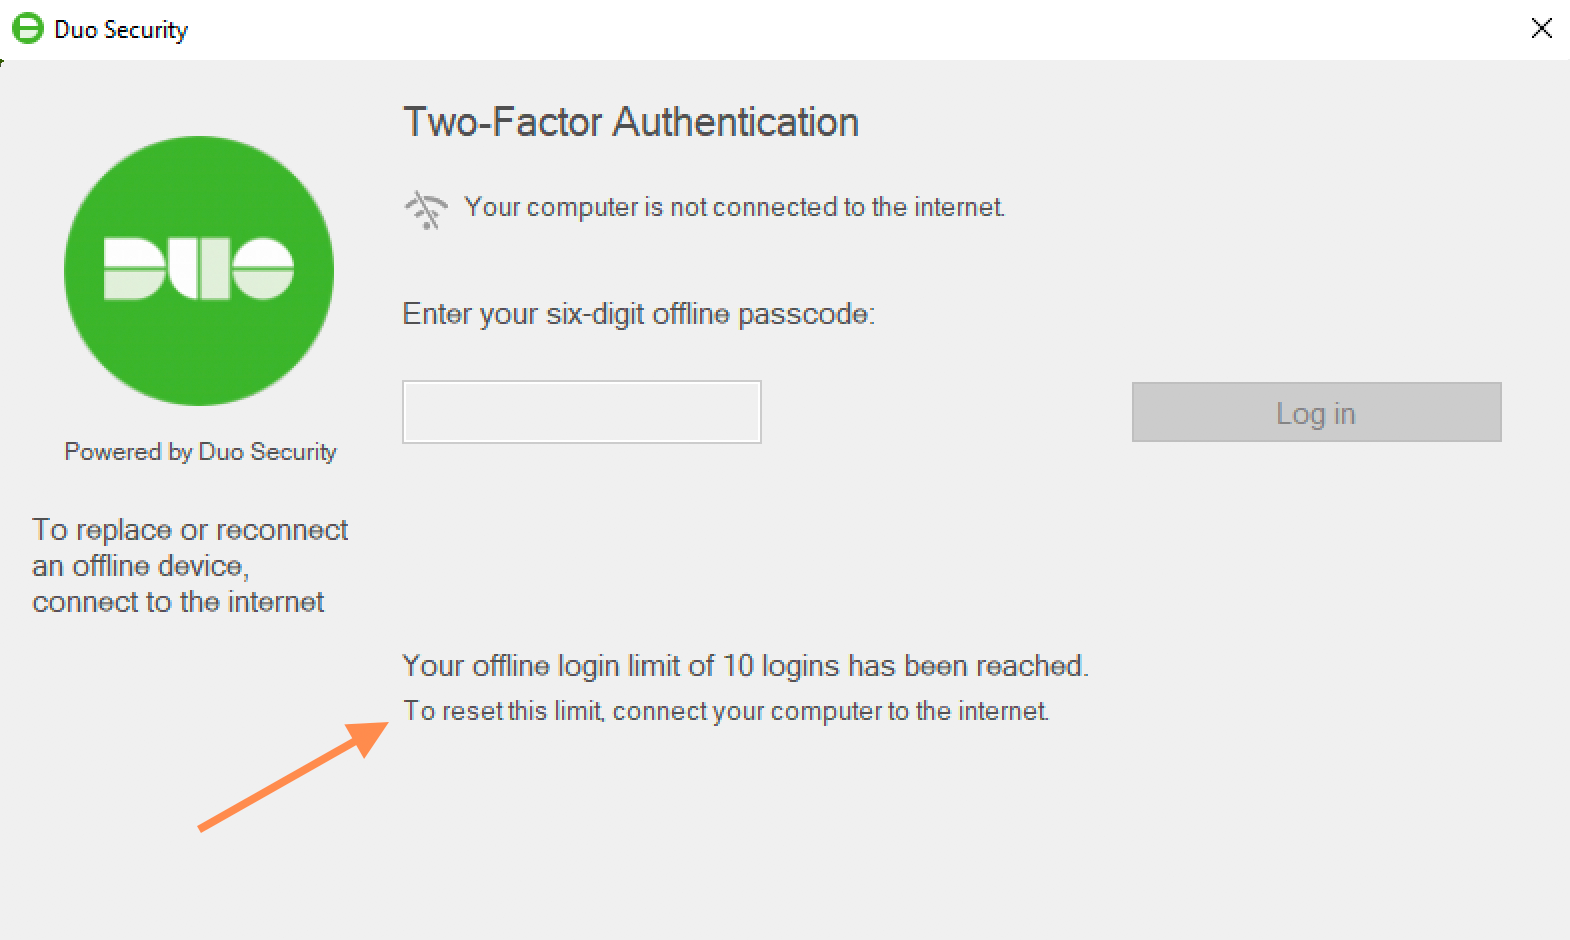 Duo Offline Authentication Limits